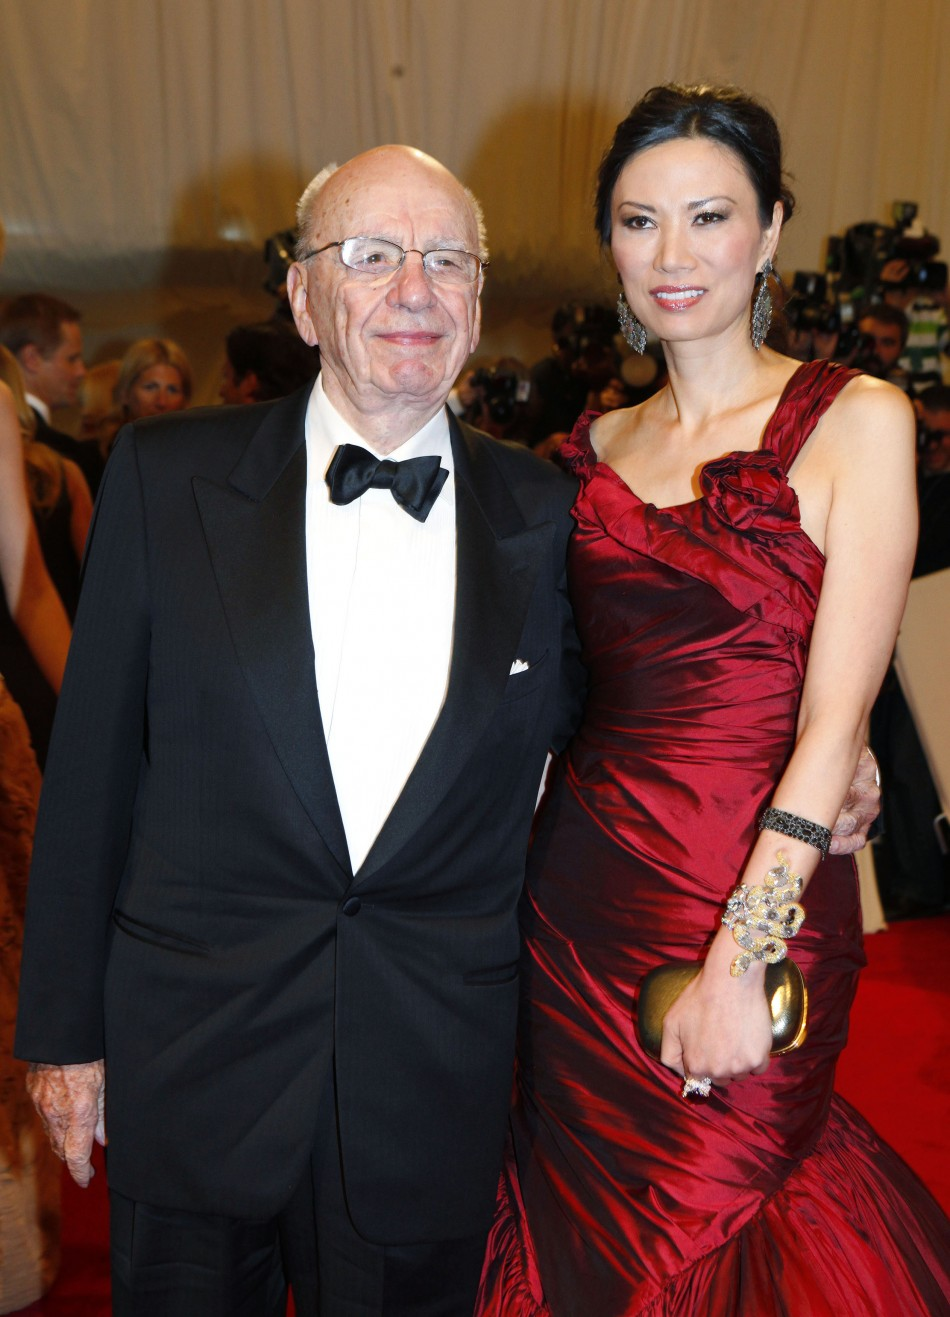 Rupert Murdoch and wife Wendi Deng Murdoch pose on the red carpet at the Metropolitan Museum of Art Costume Institute Benefit celebrating the opening of Alexander McQueen: Savage Beauty in New York